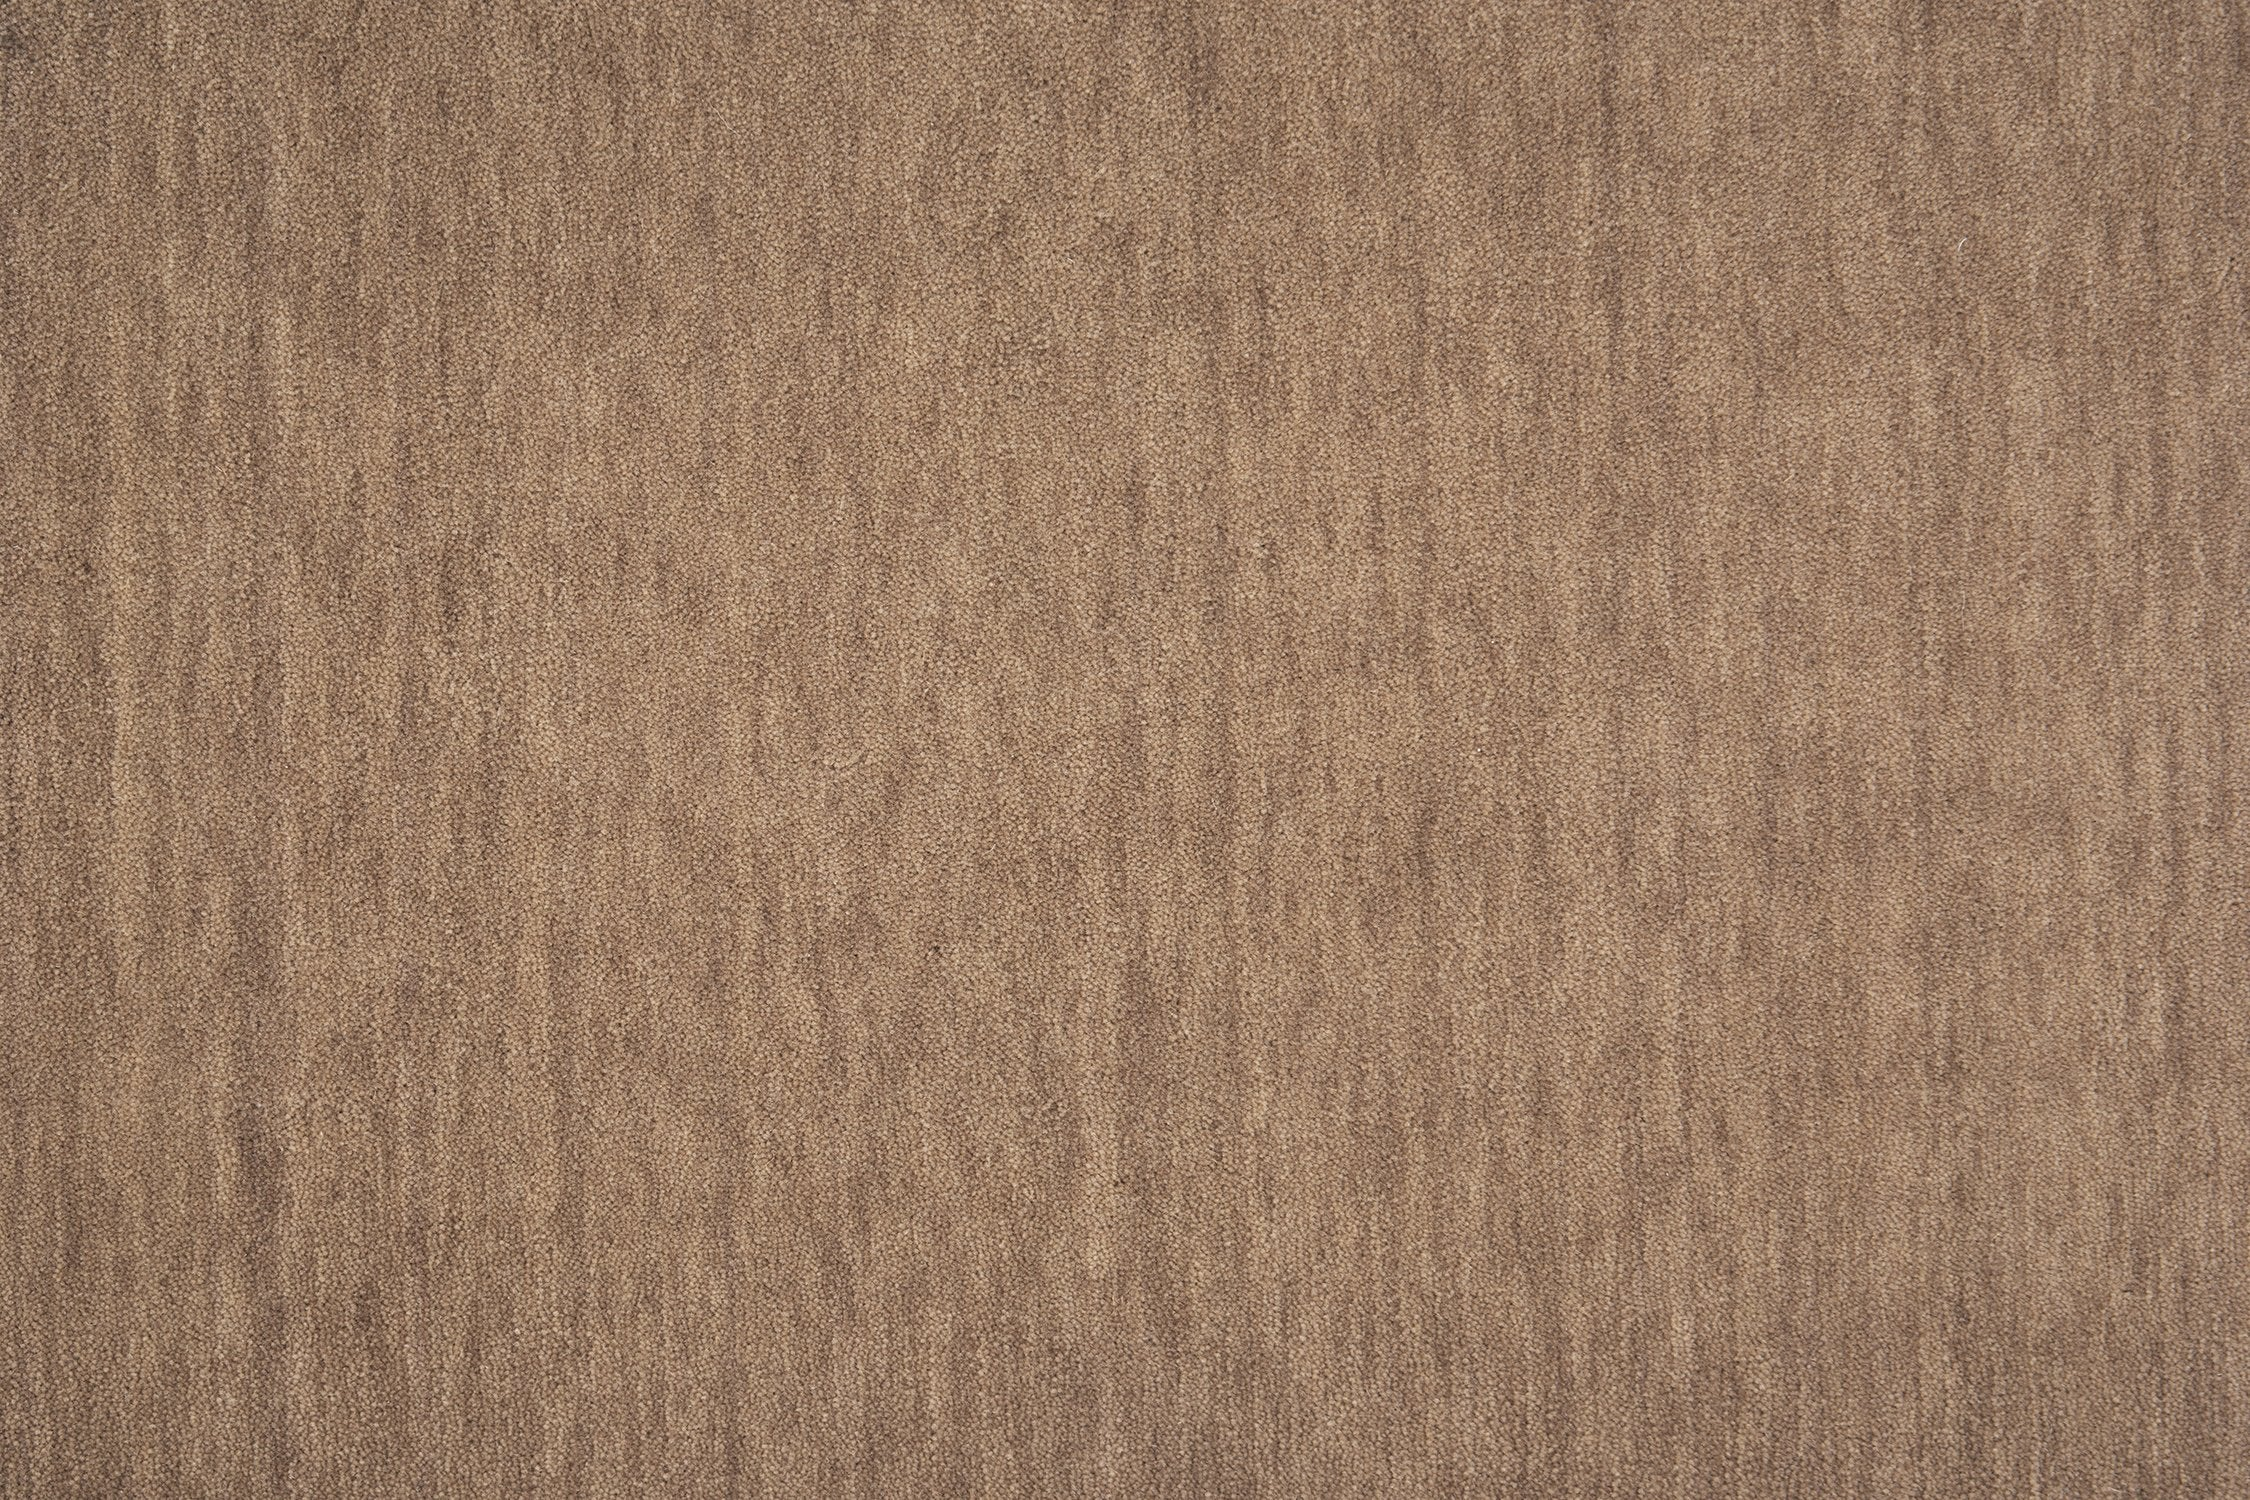 Grand Velvet broadloom runner Shop Tapis Hazelnut